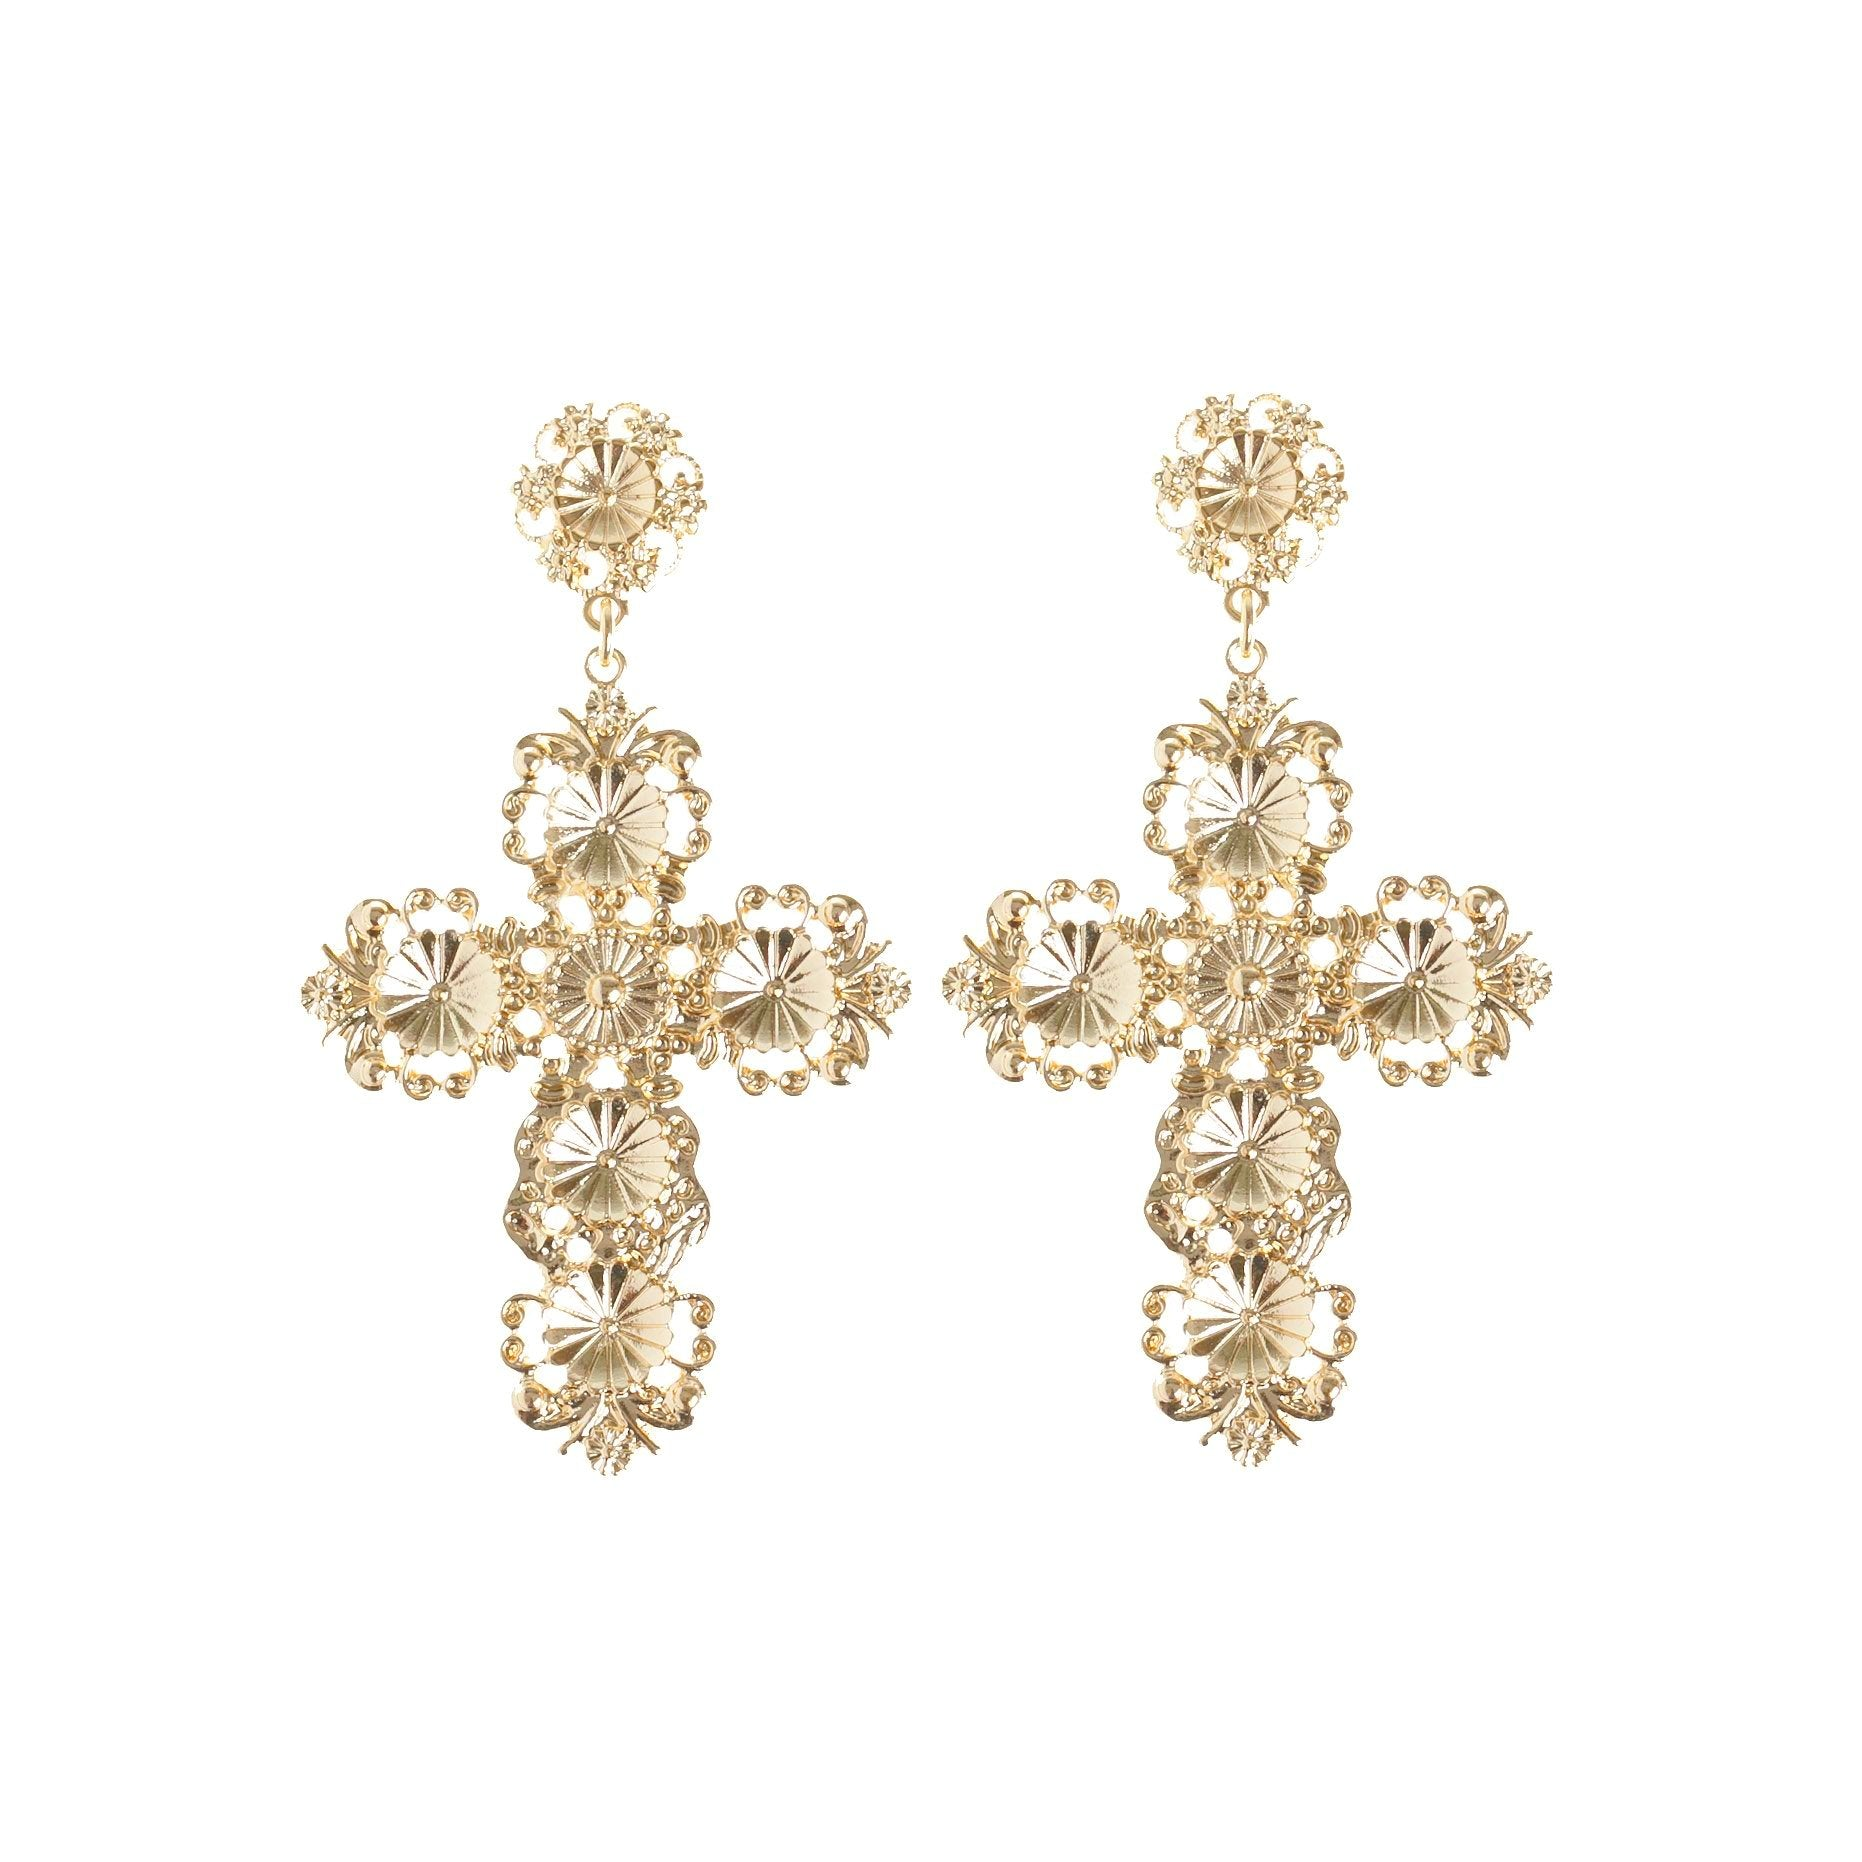 7254e97c8c9a3 Filigree Cross Earring | Lovisa Jewellery Australia